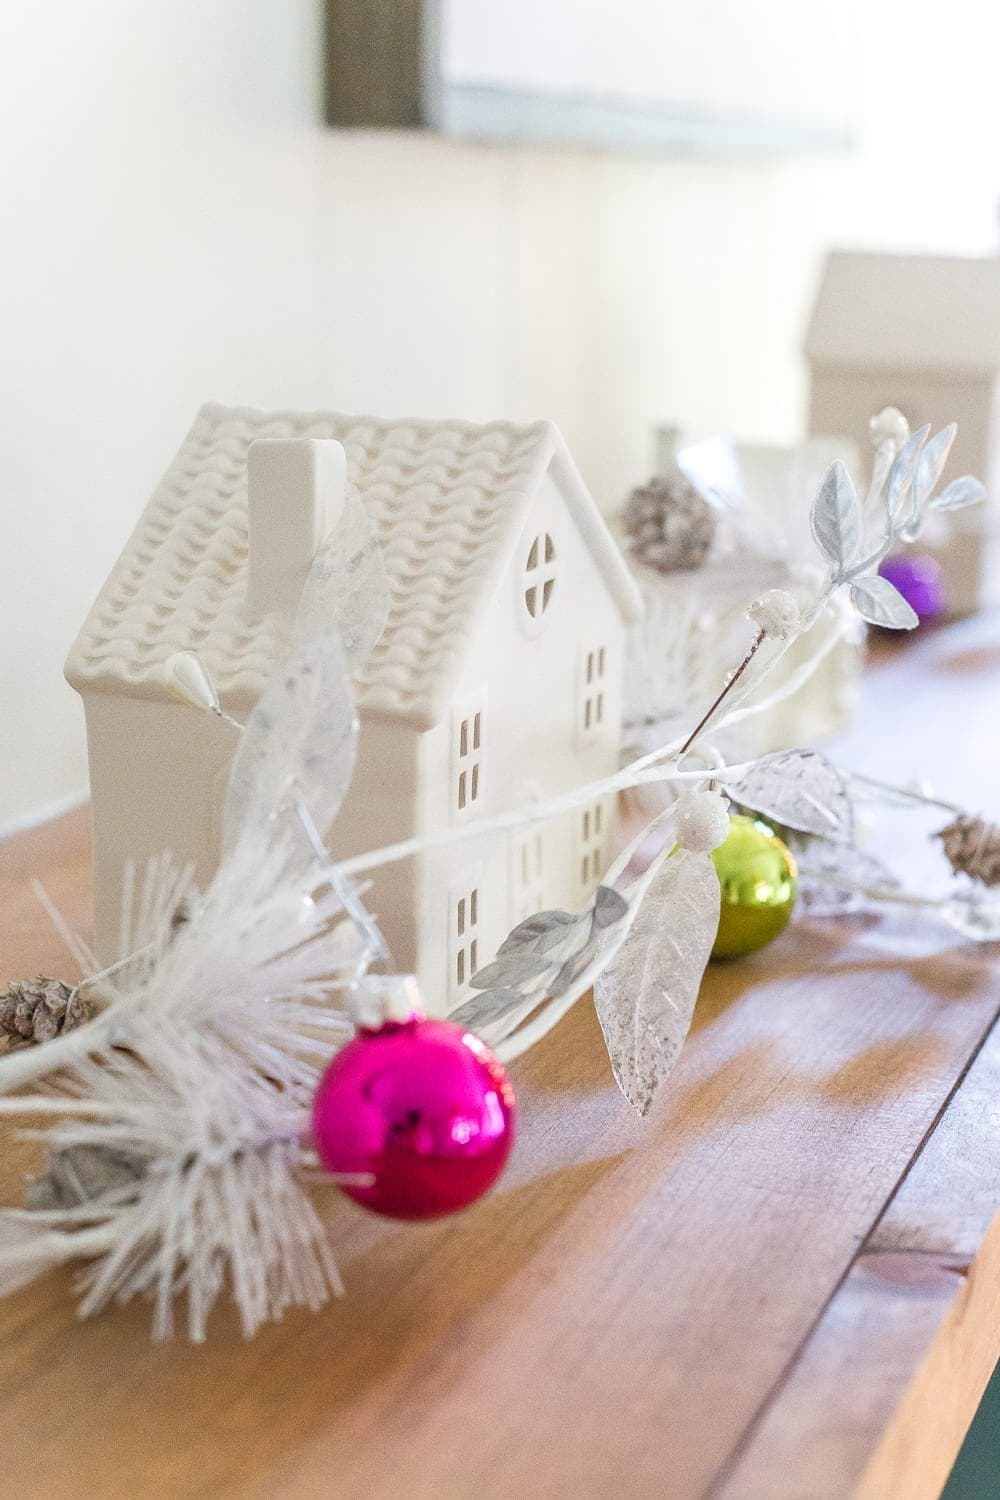 White ceramic house Christmas playroom decorations